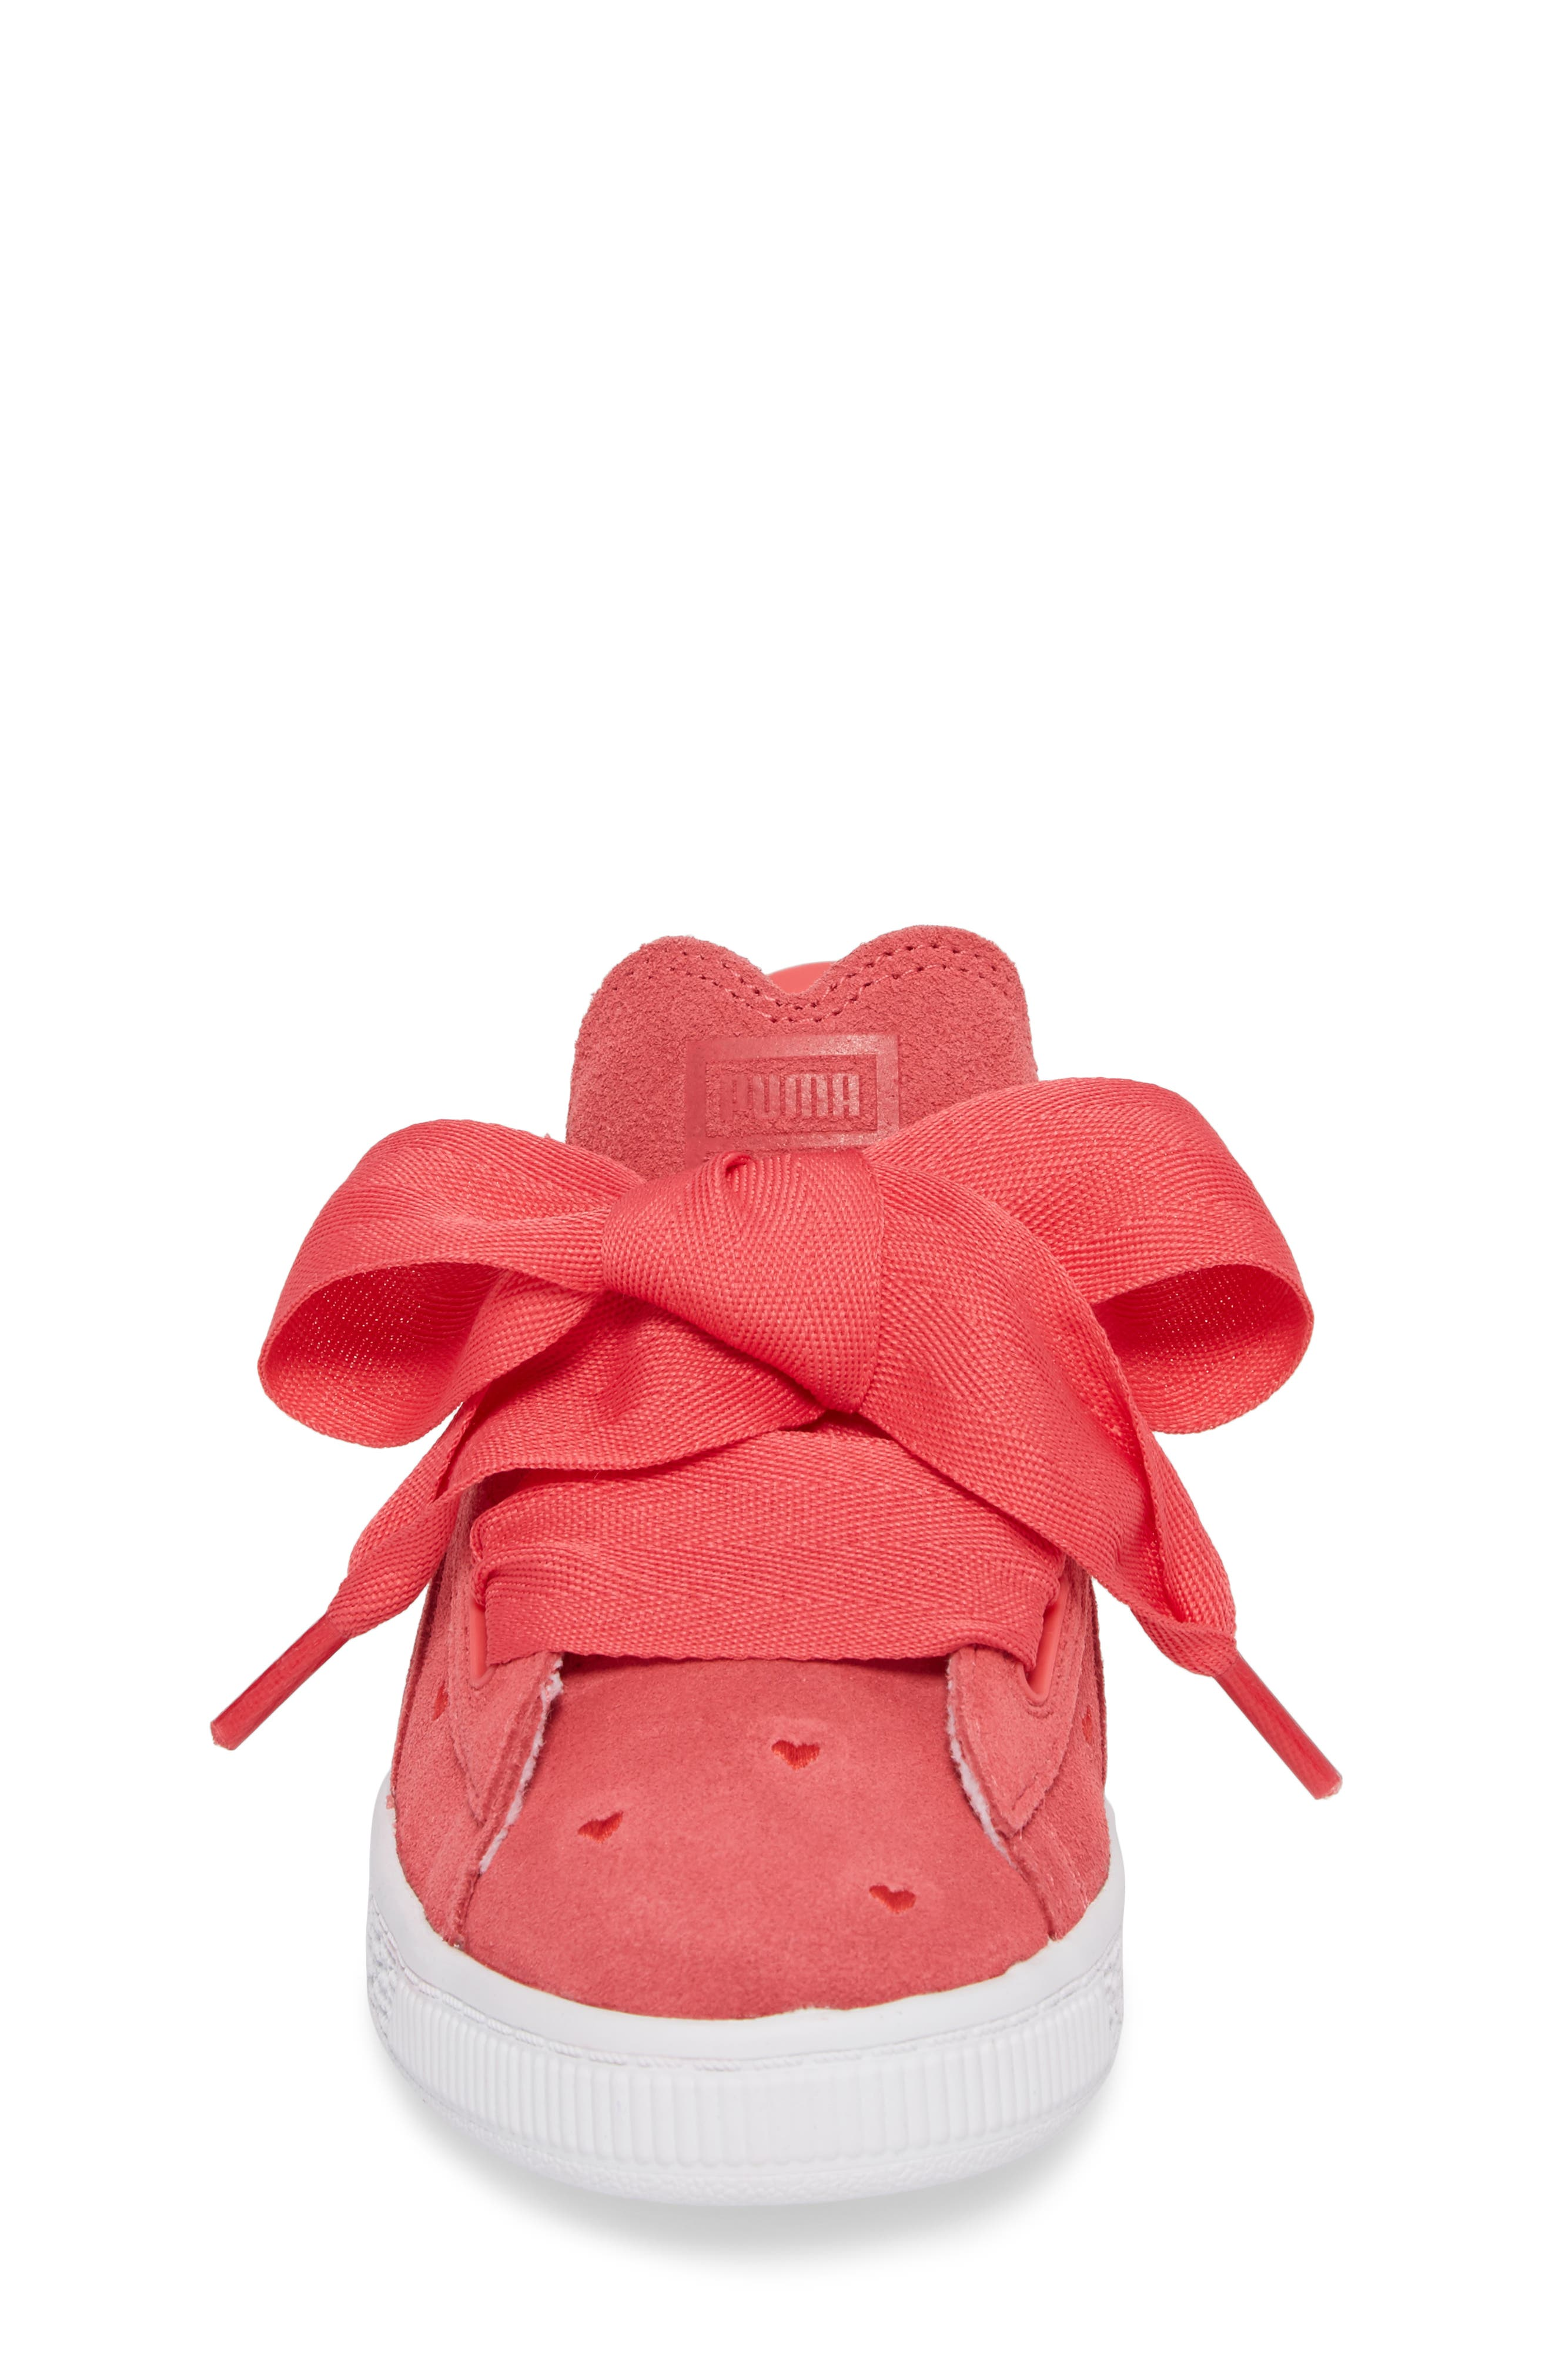 Suede Heart Valentine Sneaker,                             Alternate thumbnail 4, color,                             Paradise Pink/ Paradise Pink